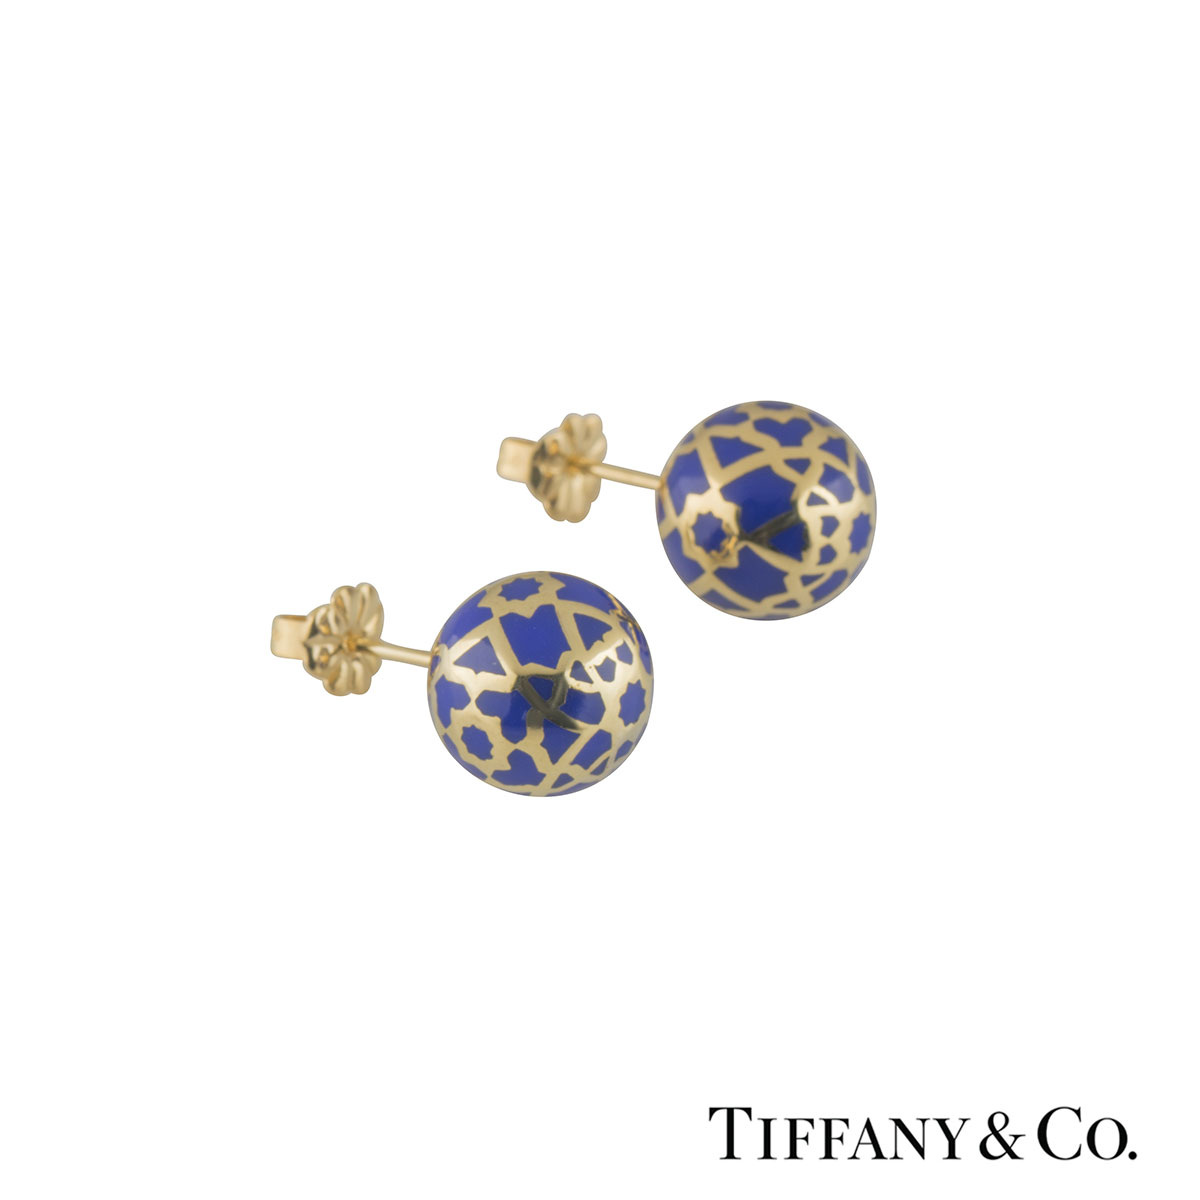 Tiffany & Co. Yellow Gold Enamel Earrings